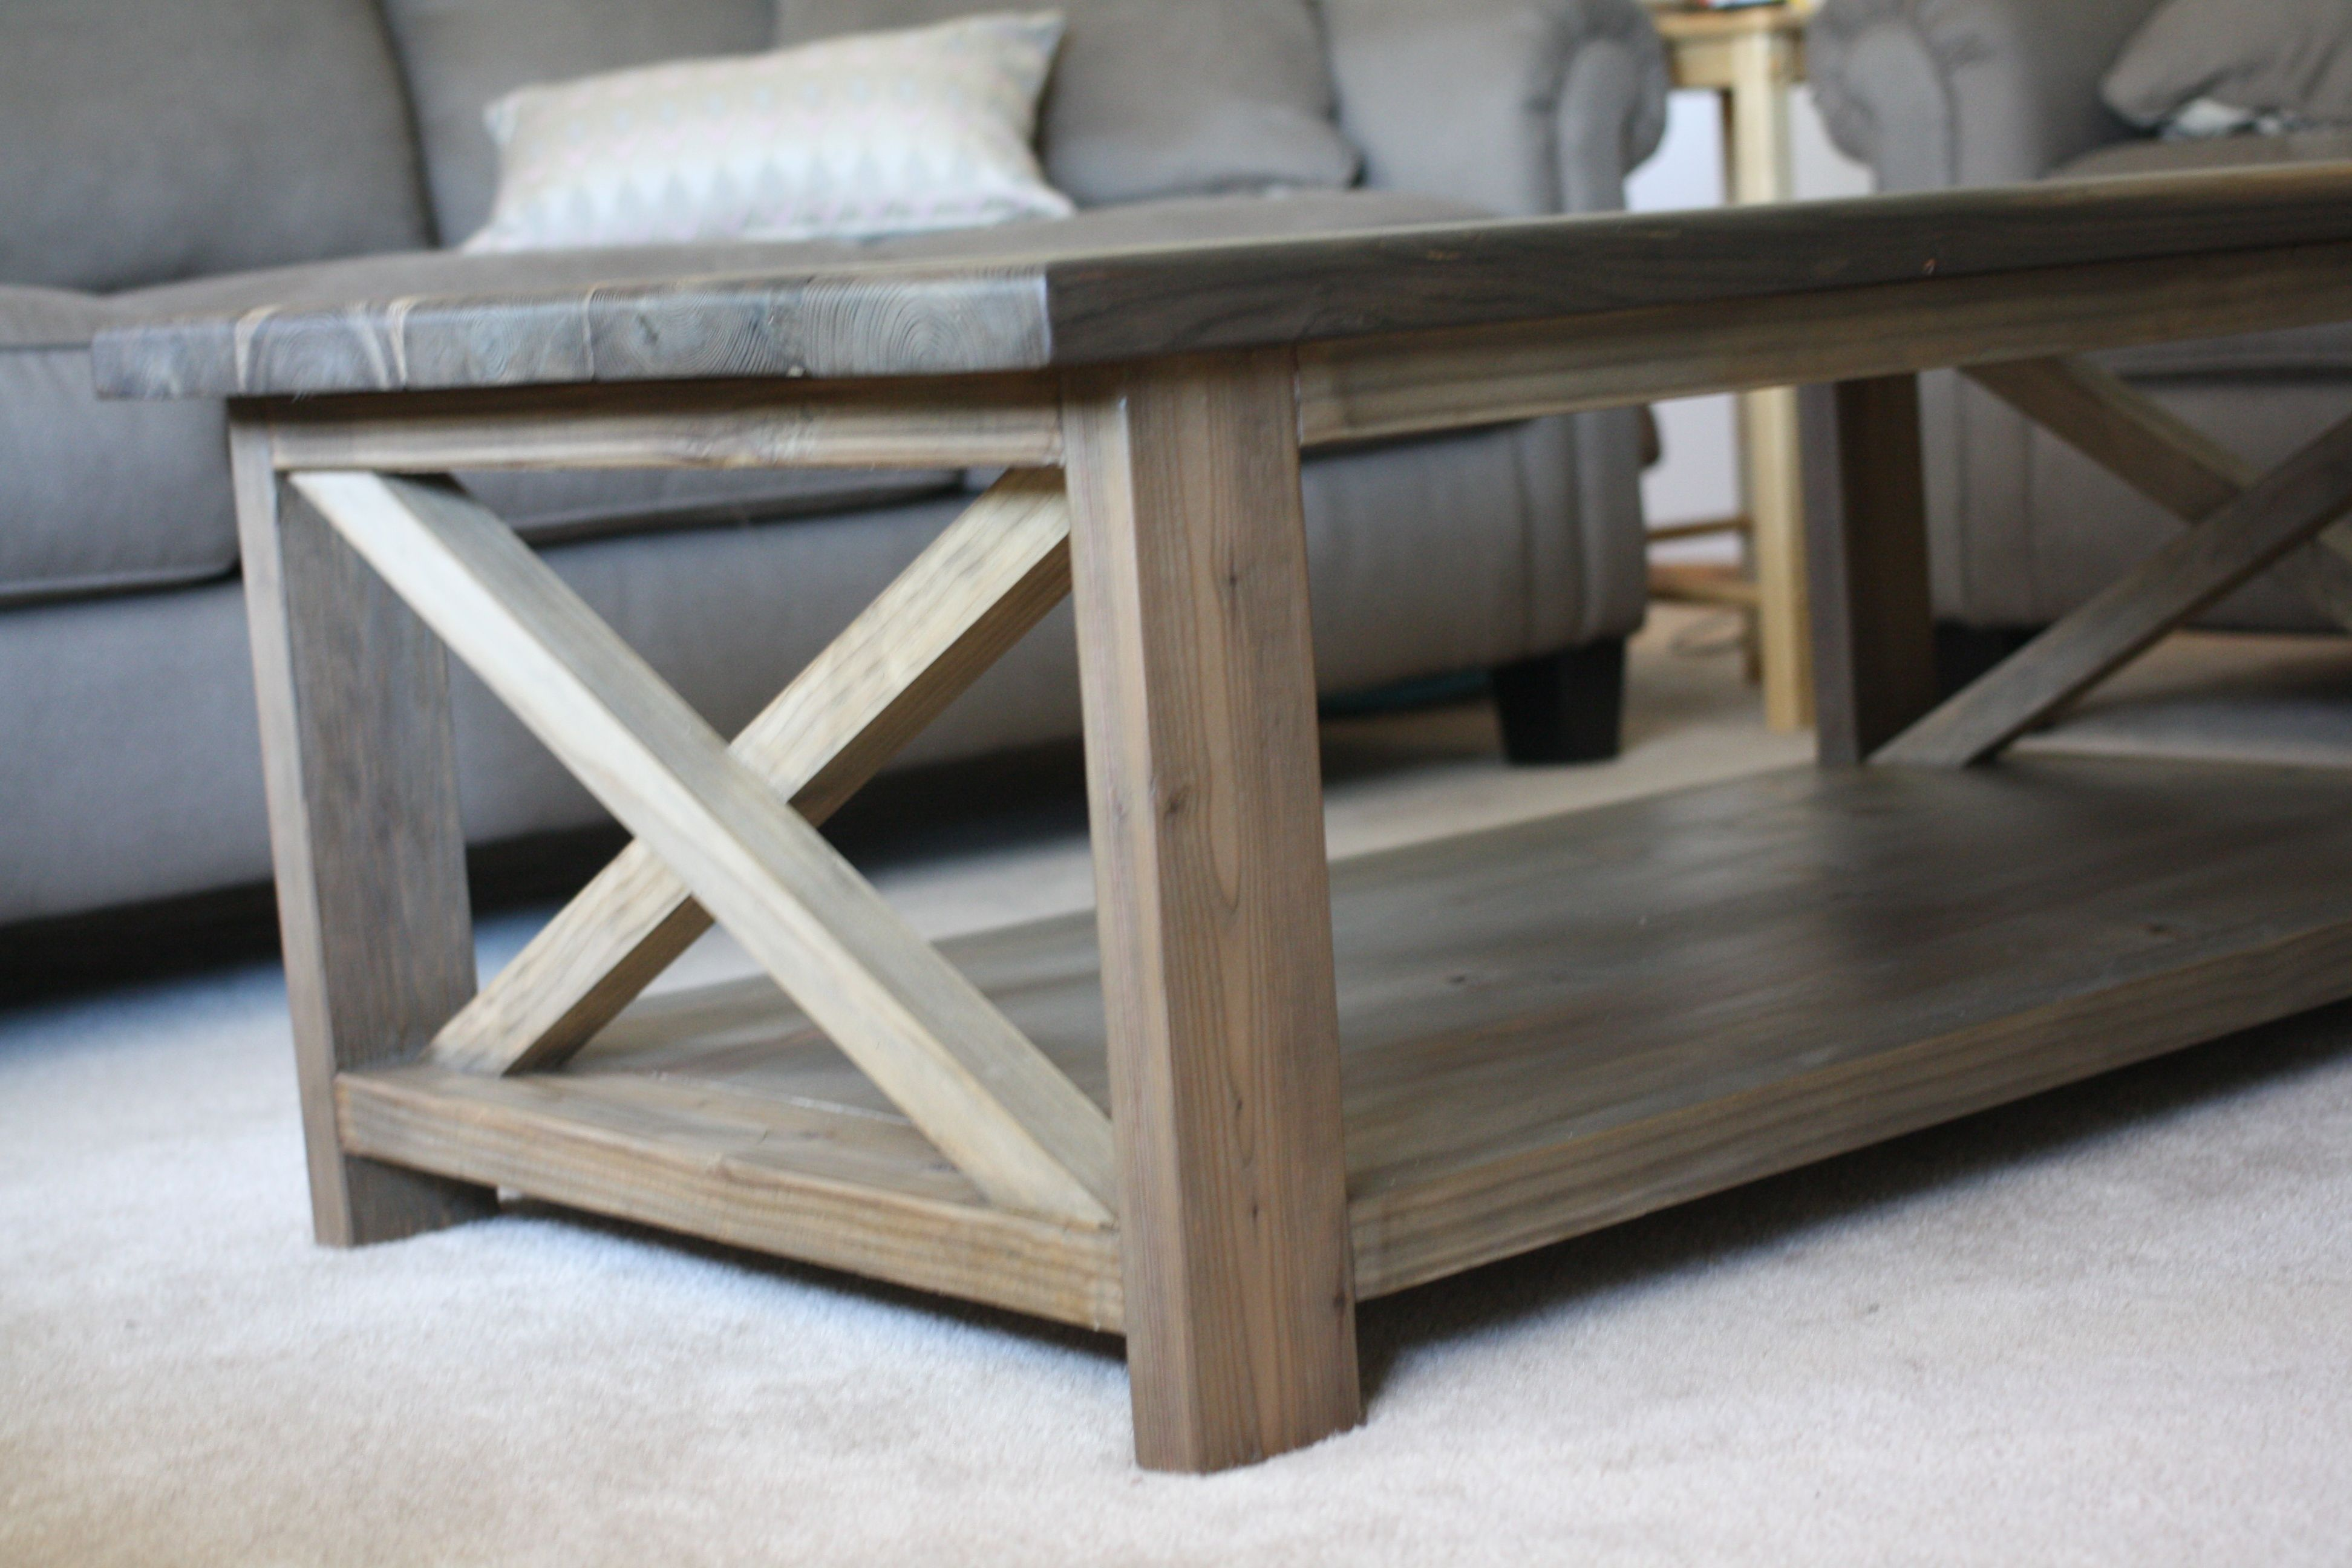 Ana White Rustic X Coffee Table Diy Projects Coffee Tables